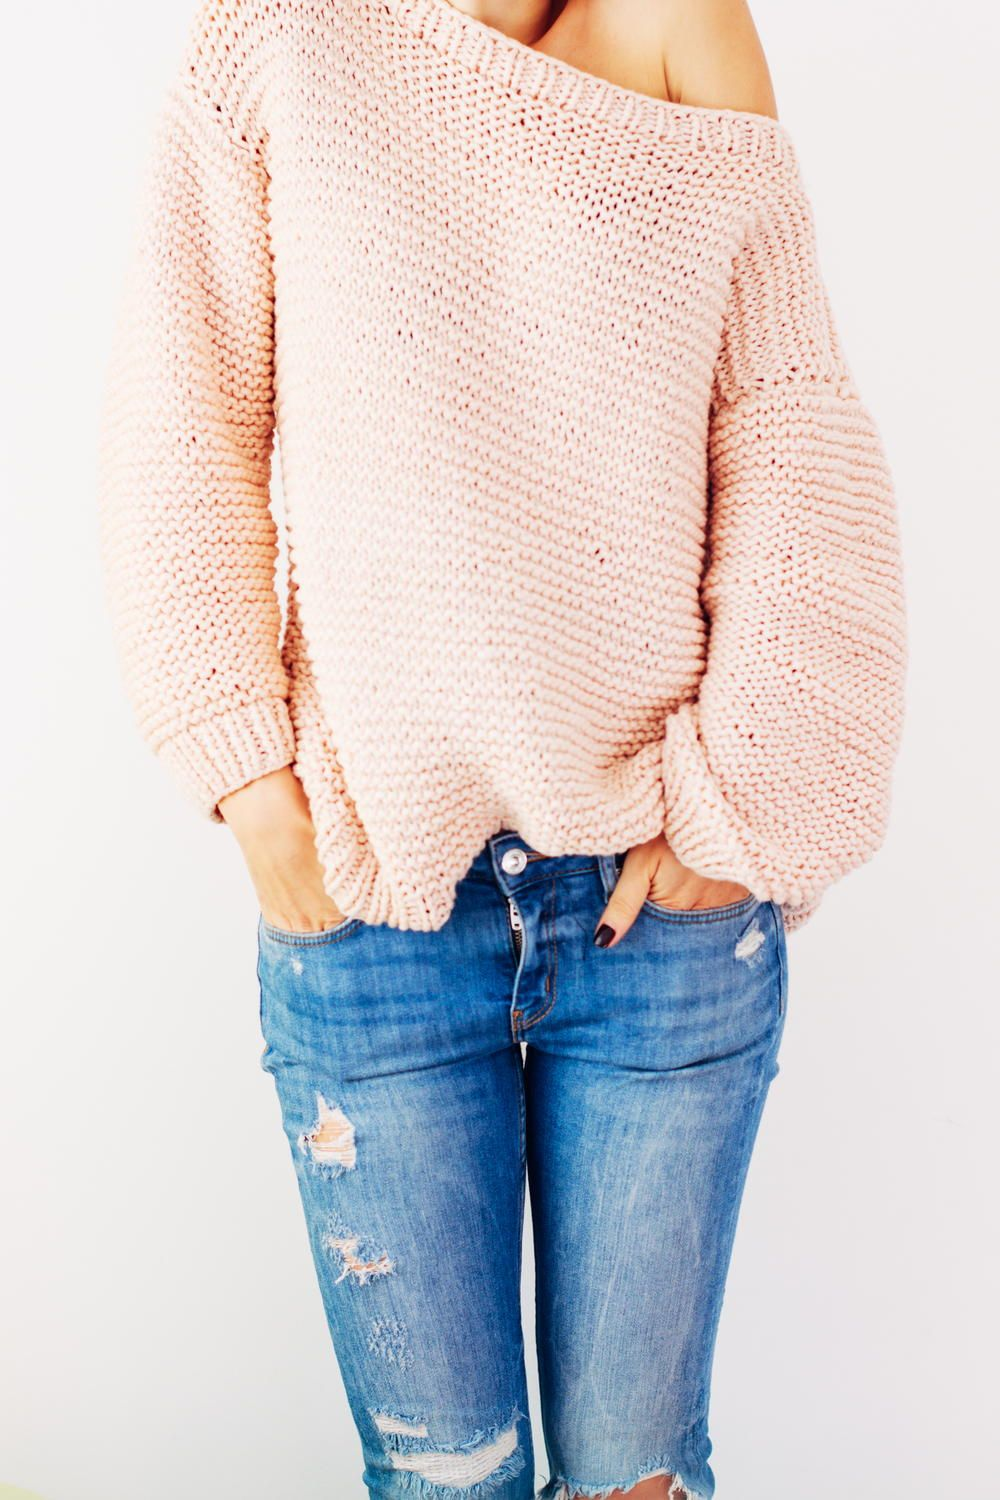 Peachy Keen Oversize Knitted Sweater Craft Ideas Pinterest